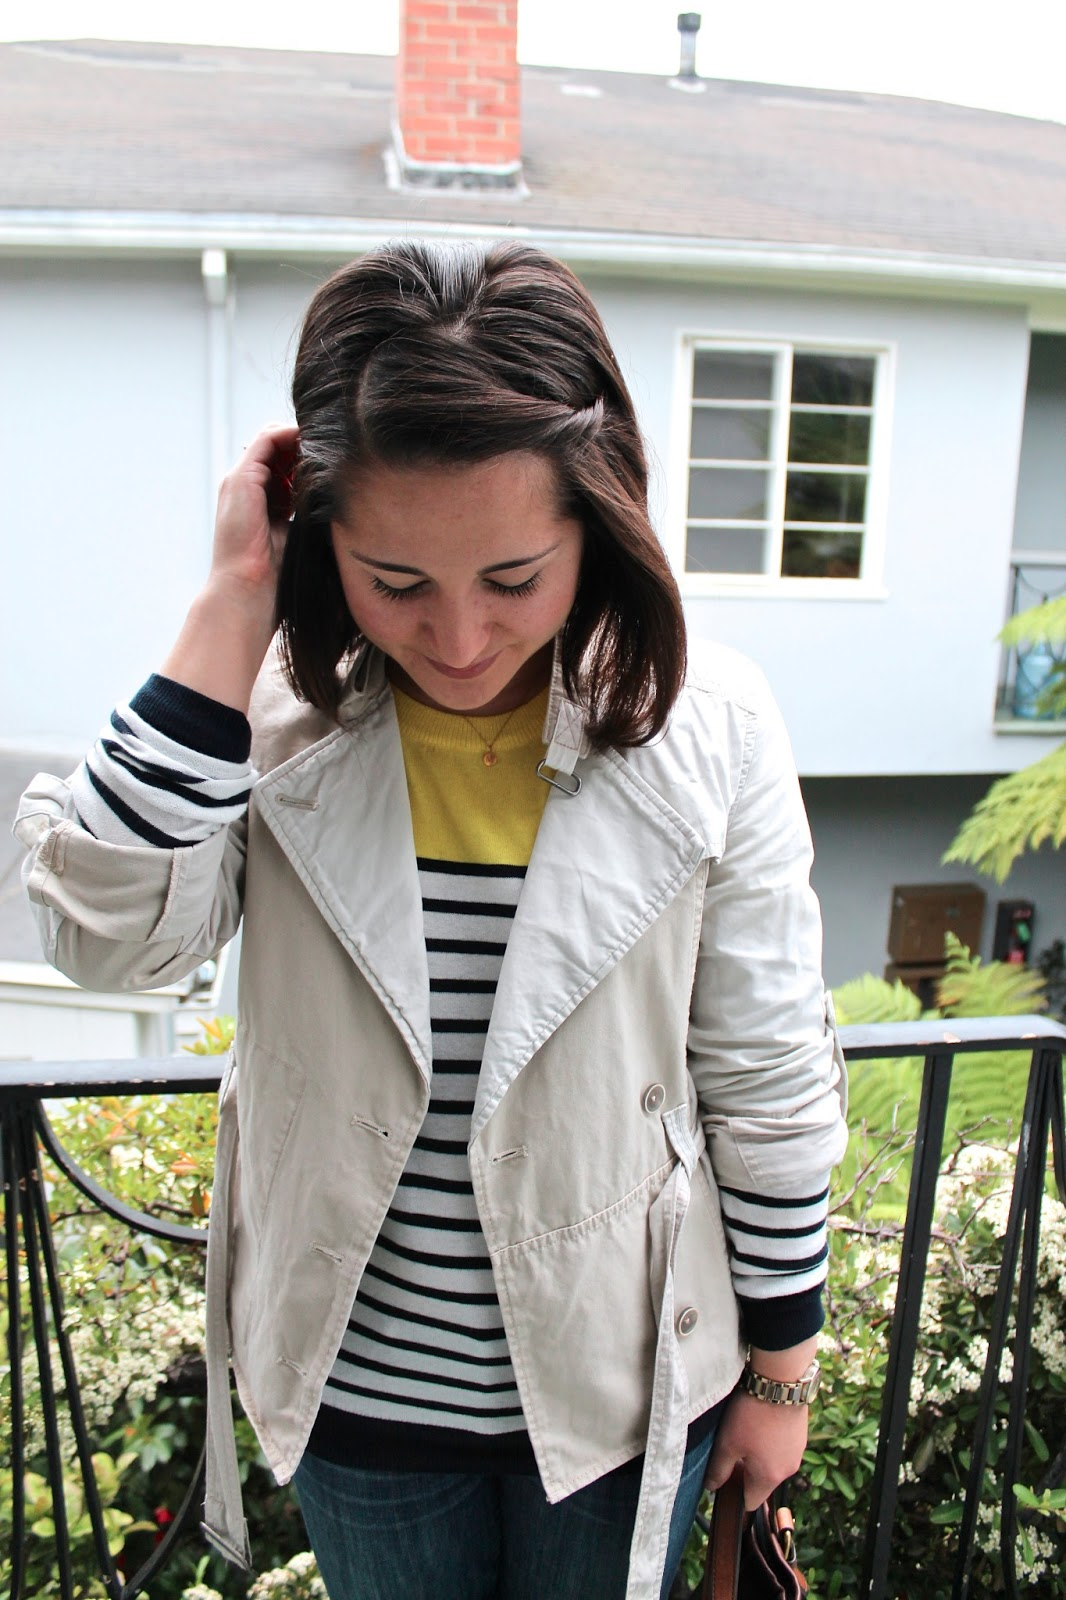 anthropologie-patched-surplus-jacket-and-striped-sweater